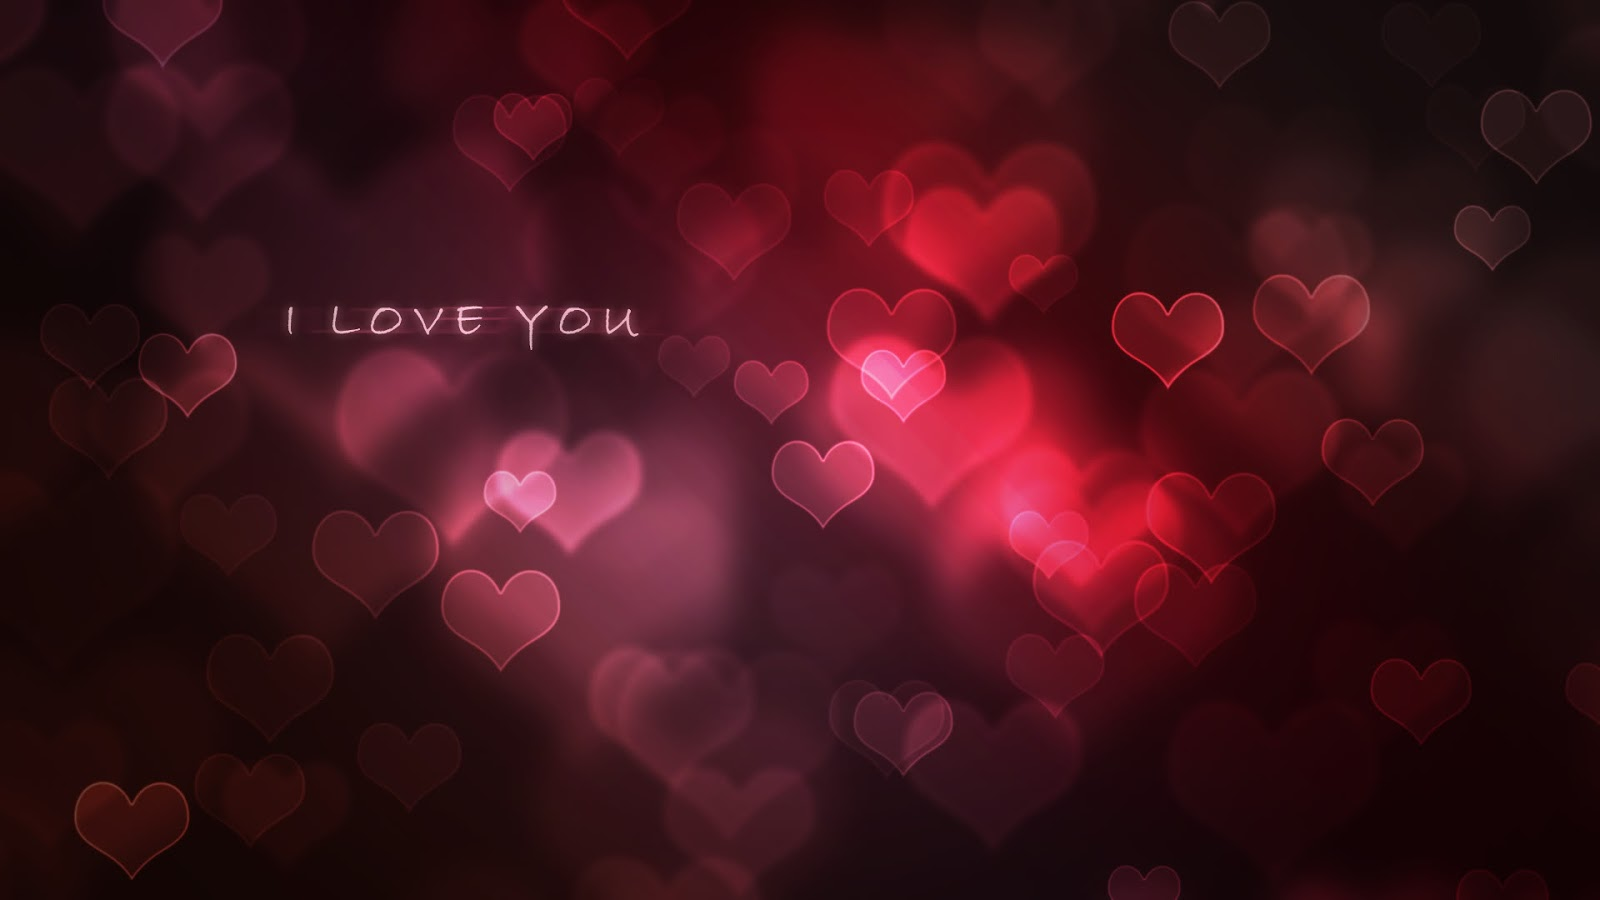 I Love You Wallpaper Hd i love you hd wallpapers